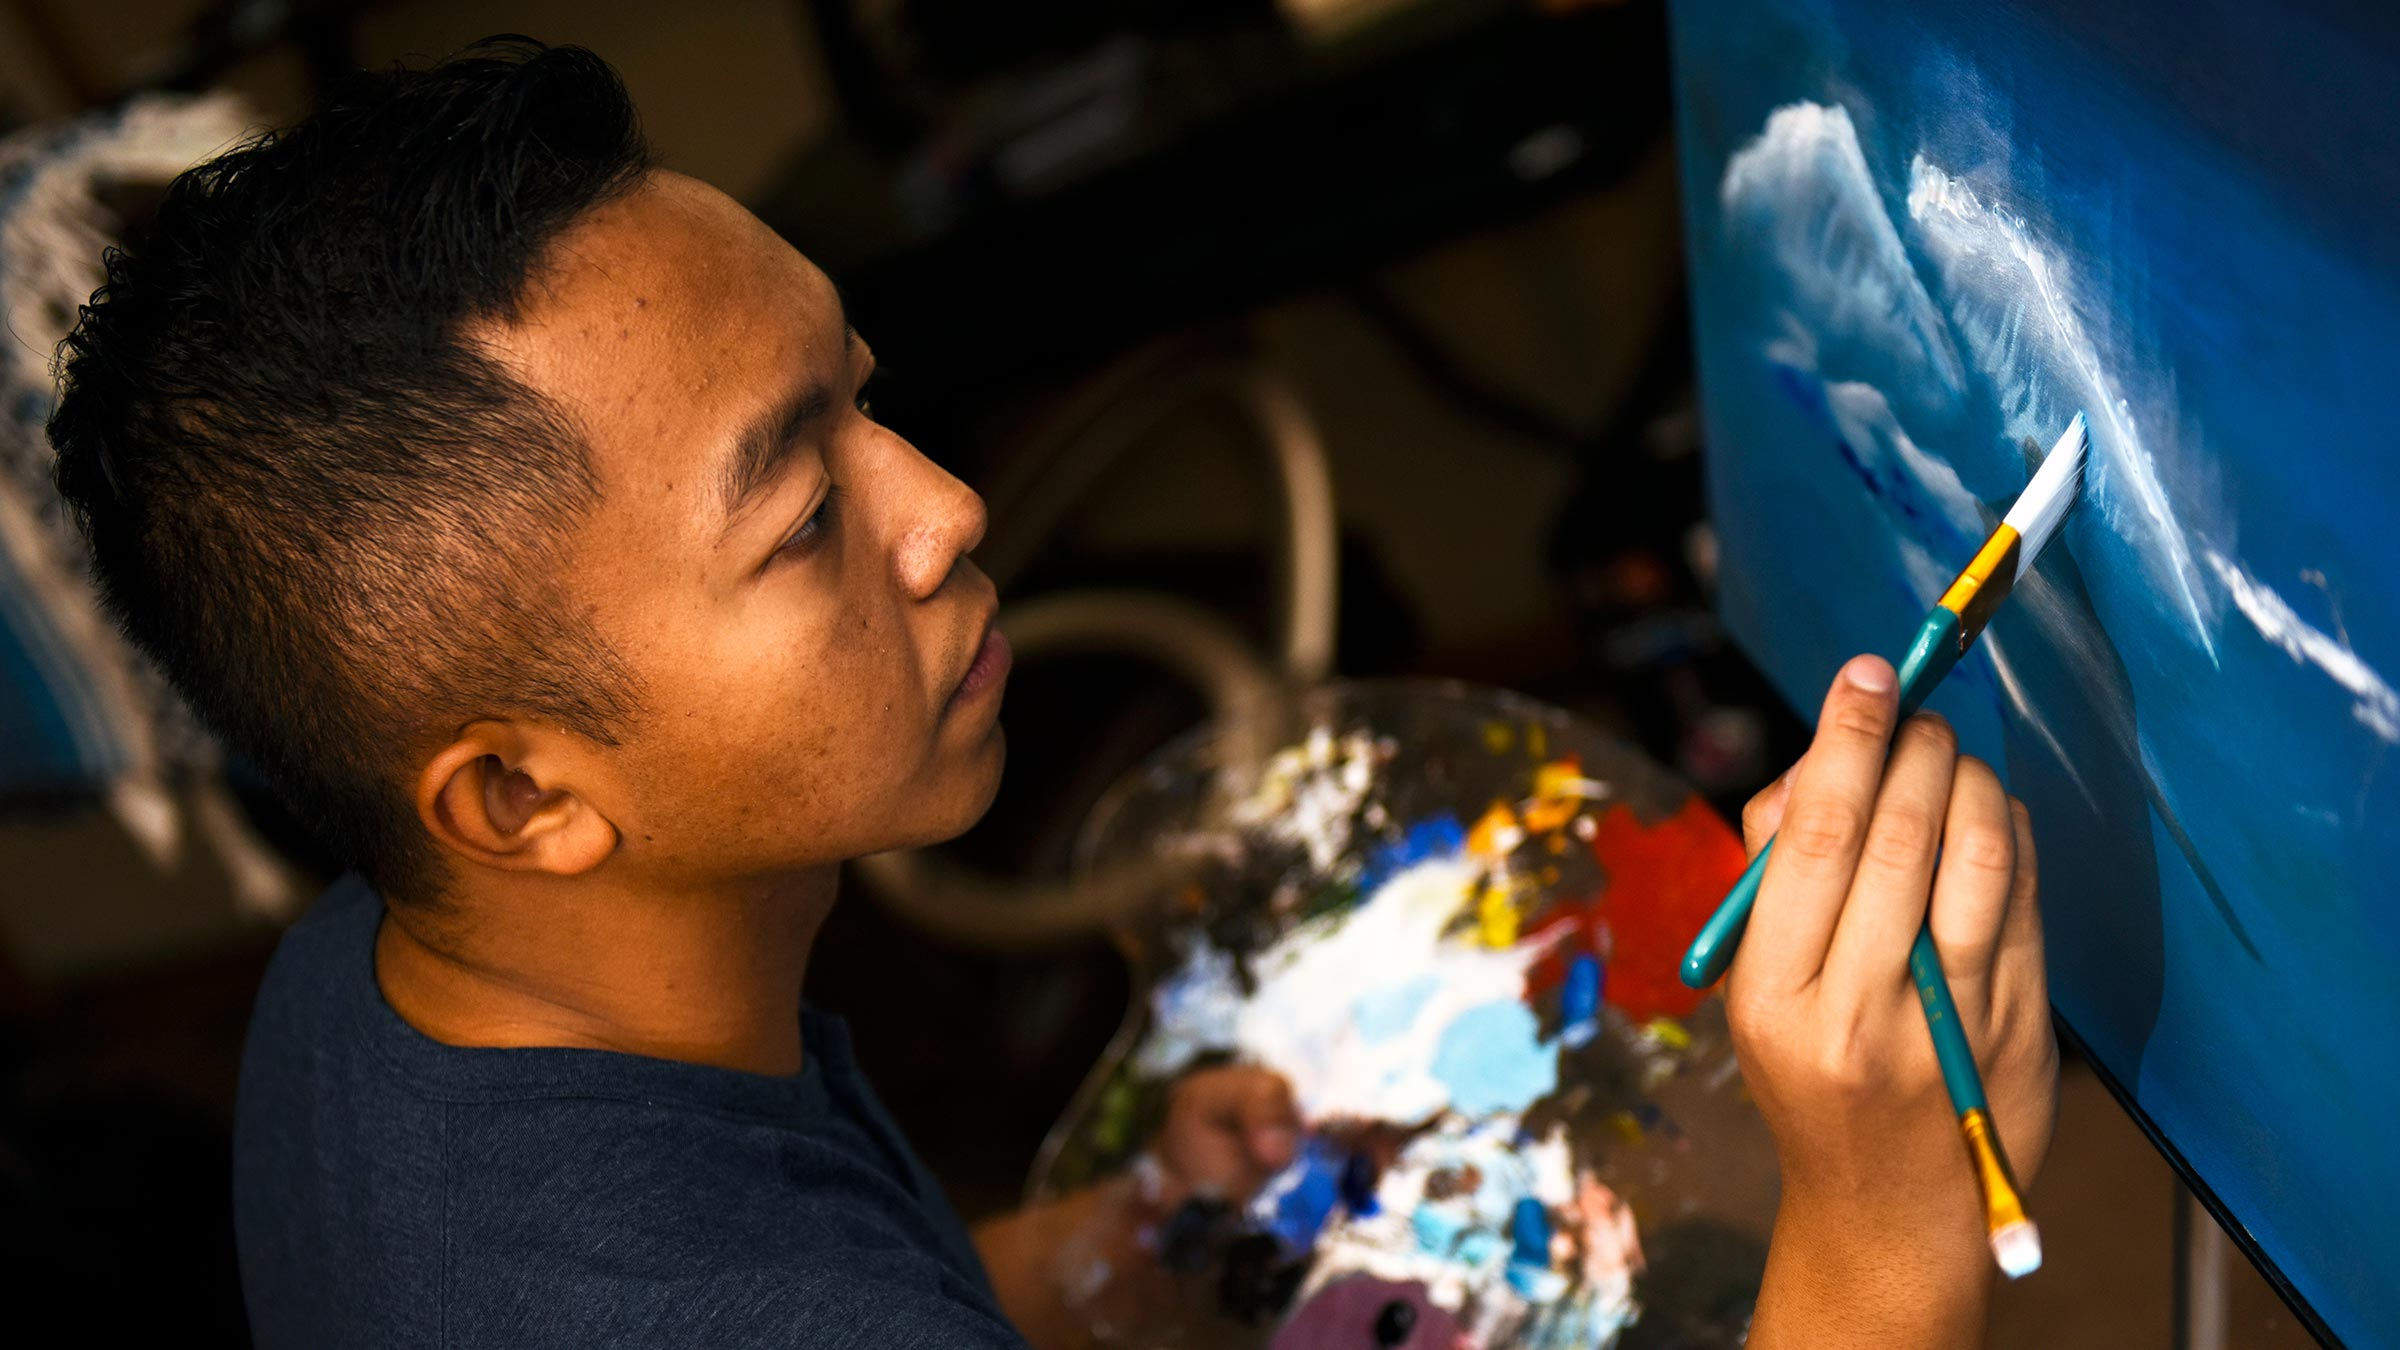 Service member is painting.